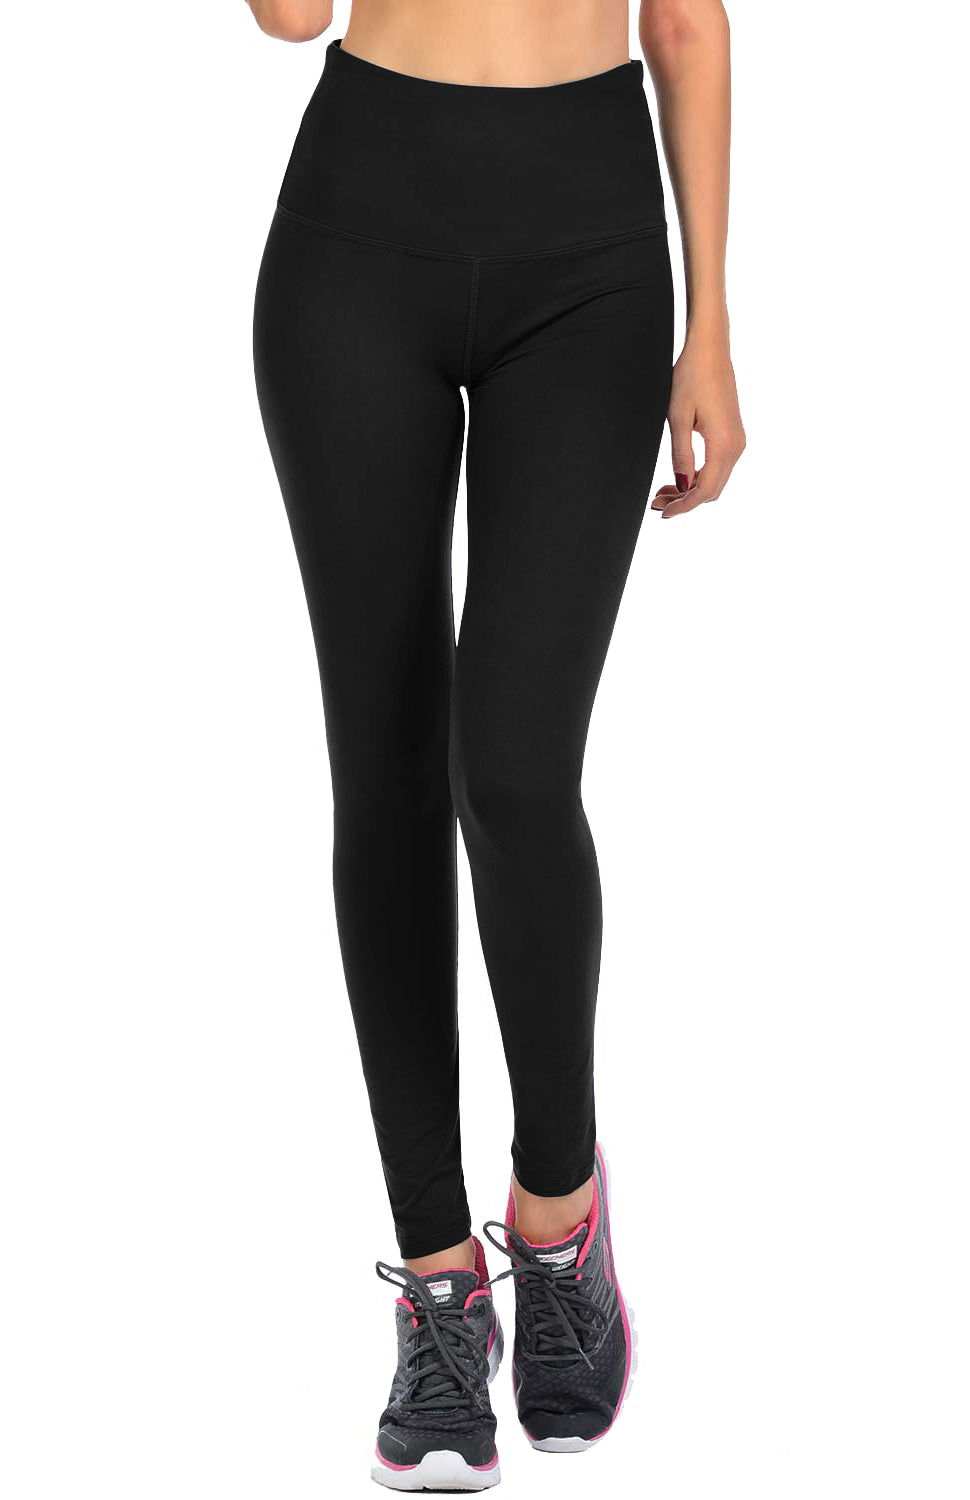 VIV Collection Signature Leggings Ultra Soft and Strong Tension Elastic YOGA Waistband w/ Hidden Pocket